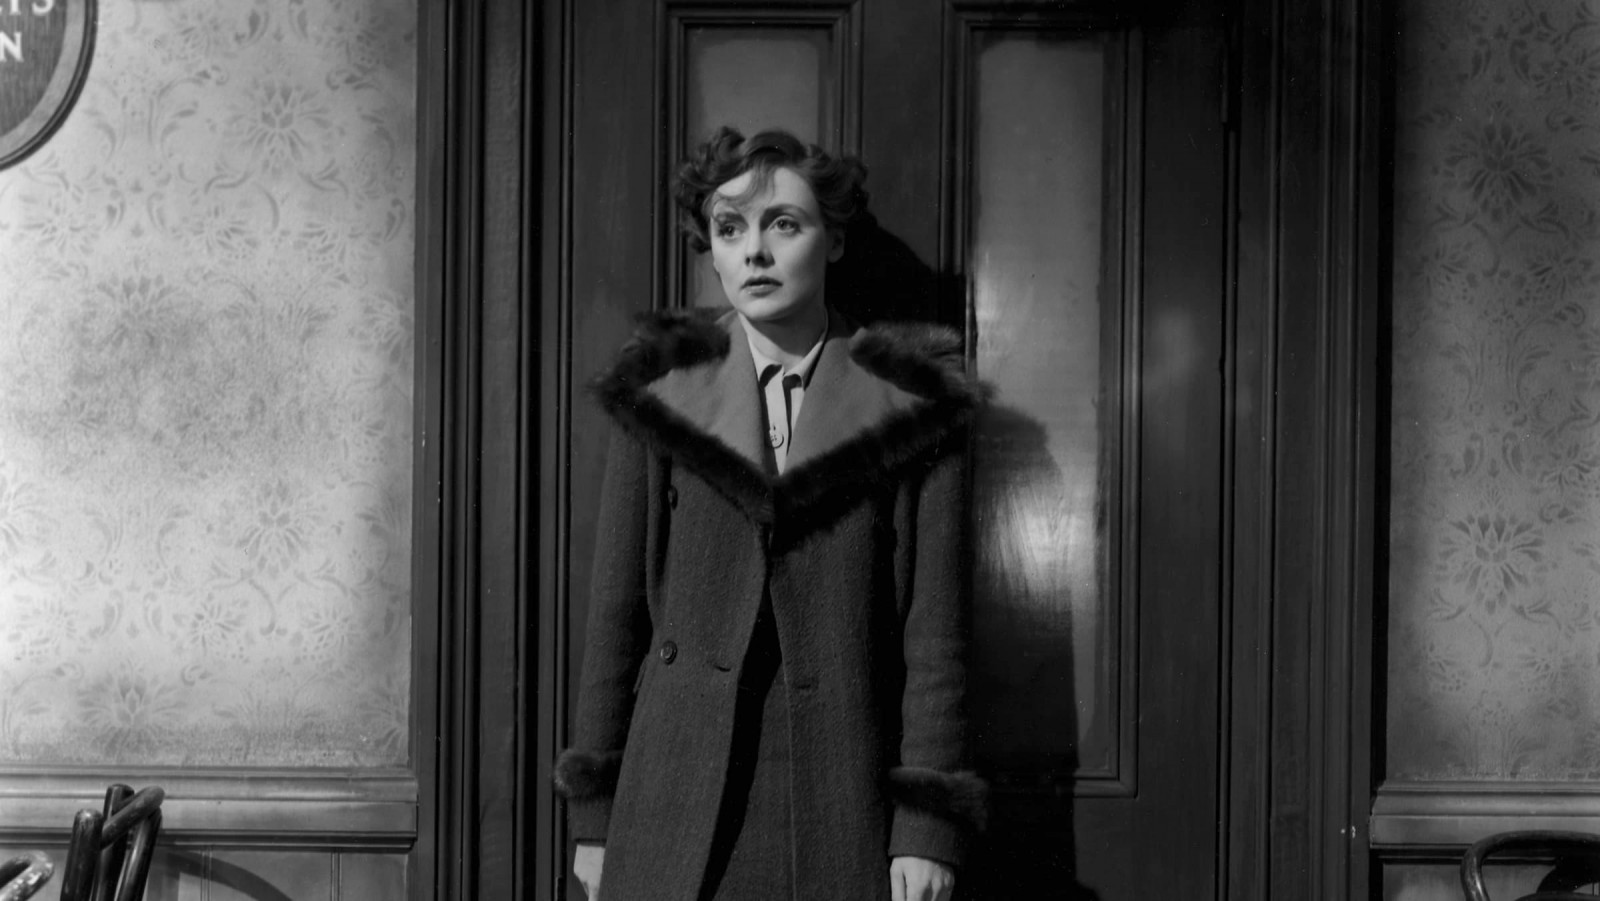 Flickers of Passion: Celia Johnson in Brief Encounter